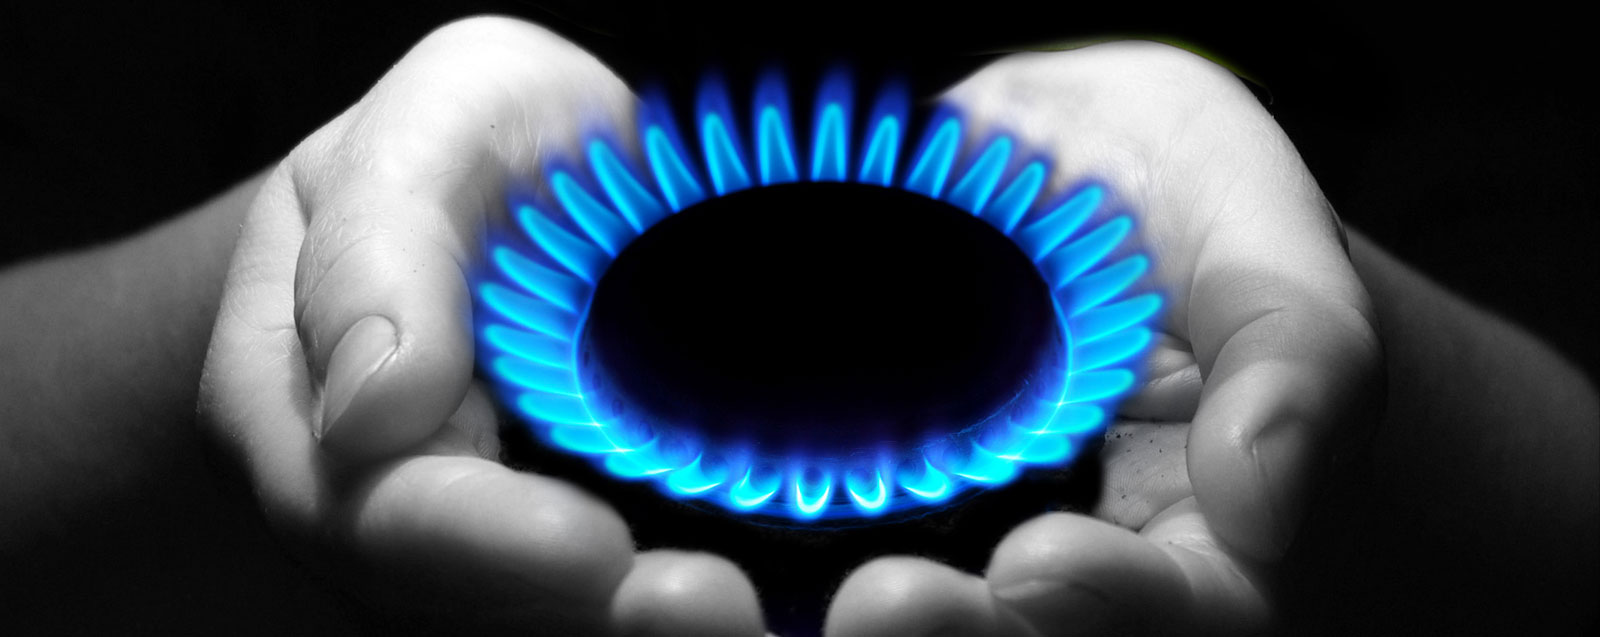 A consumer engagement solution for gas utilities